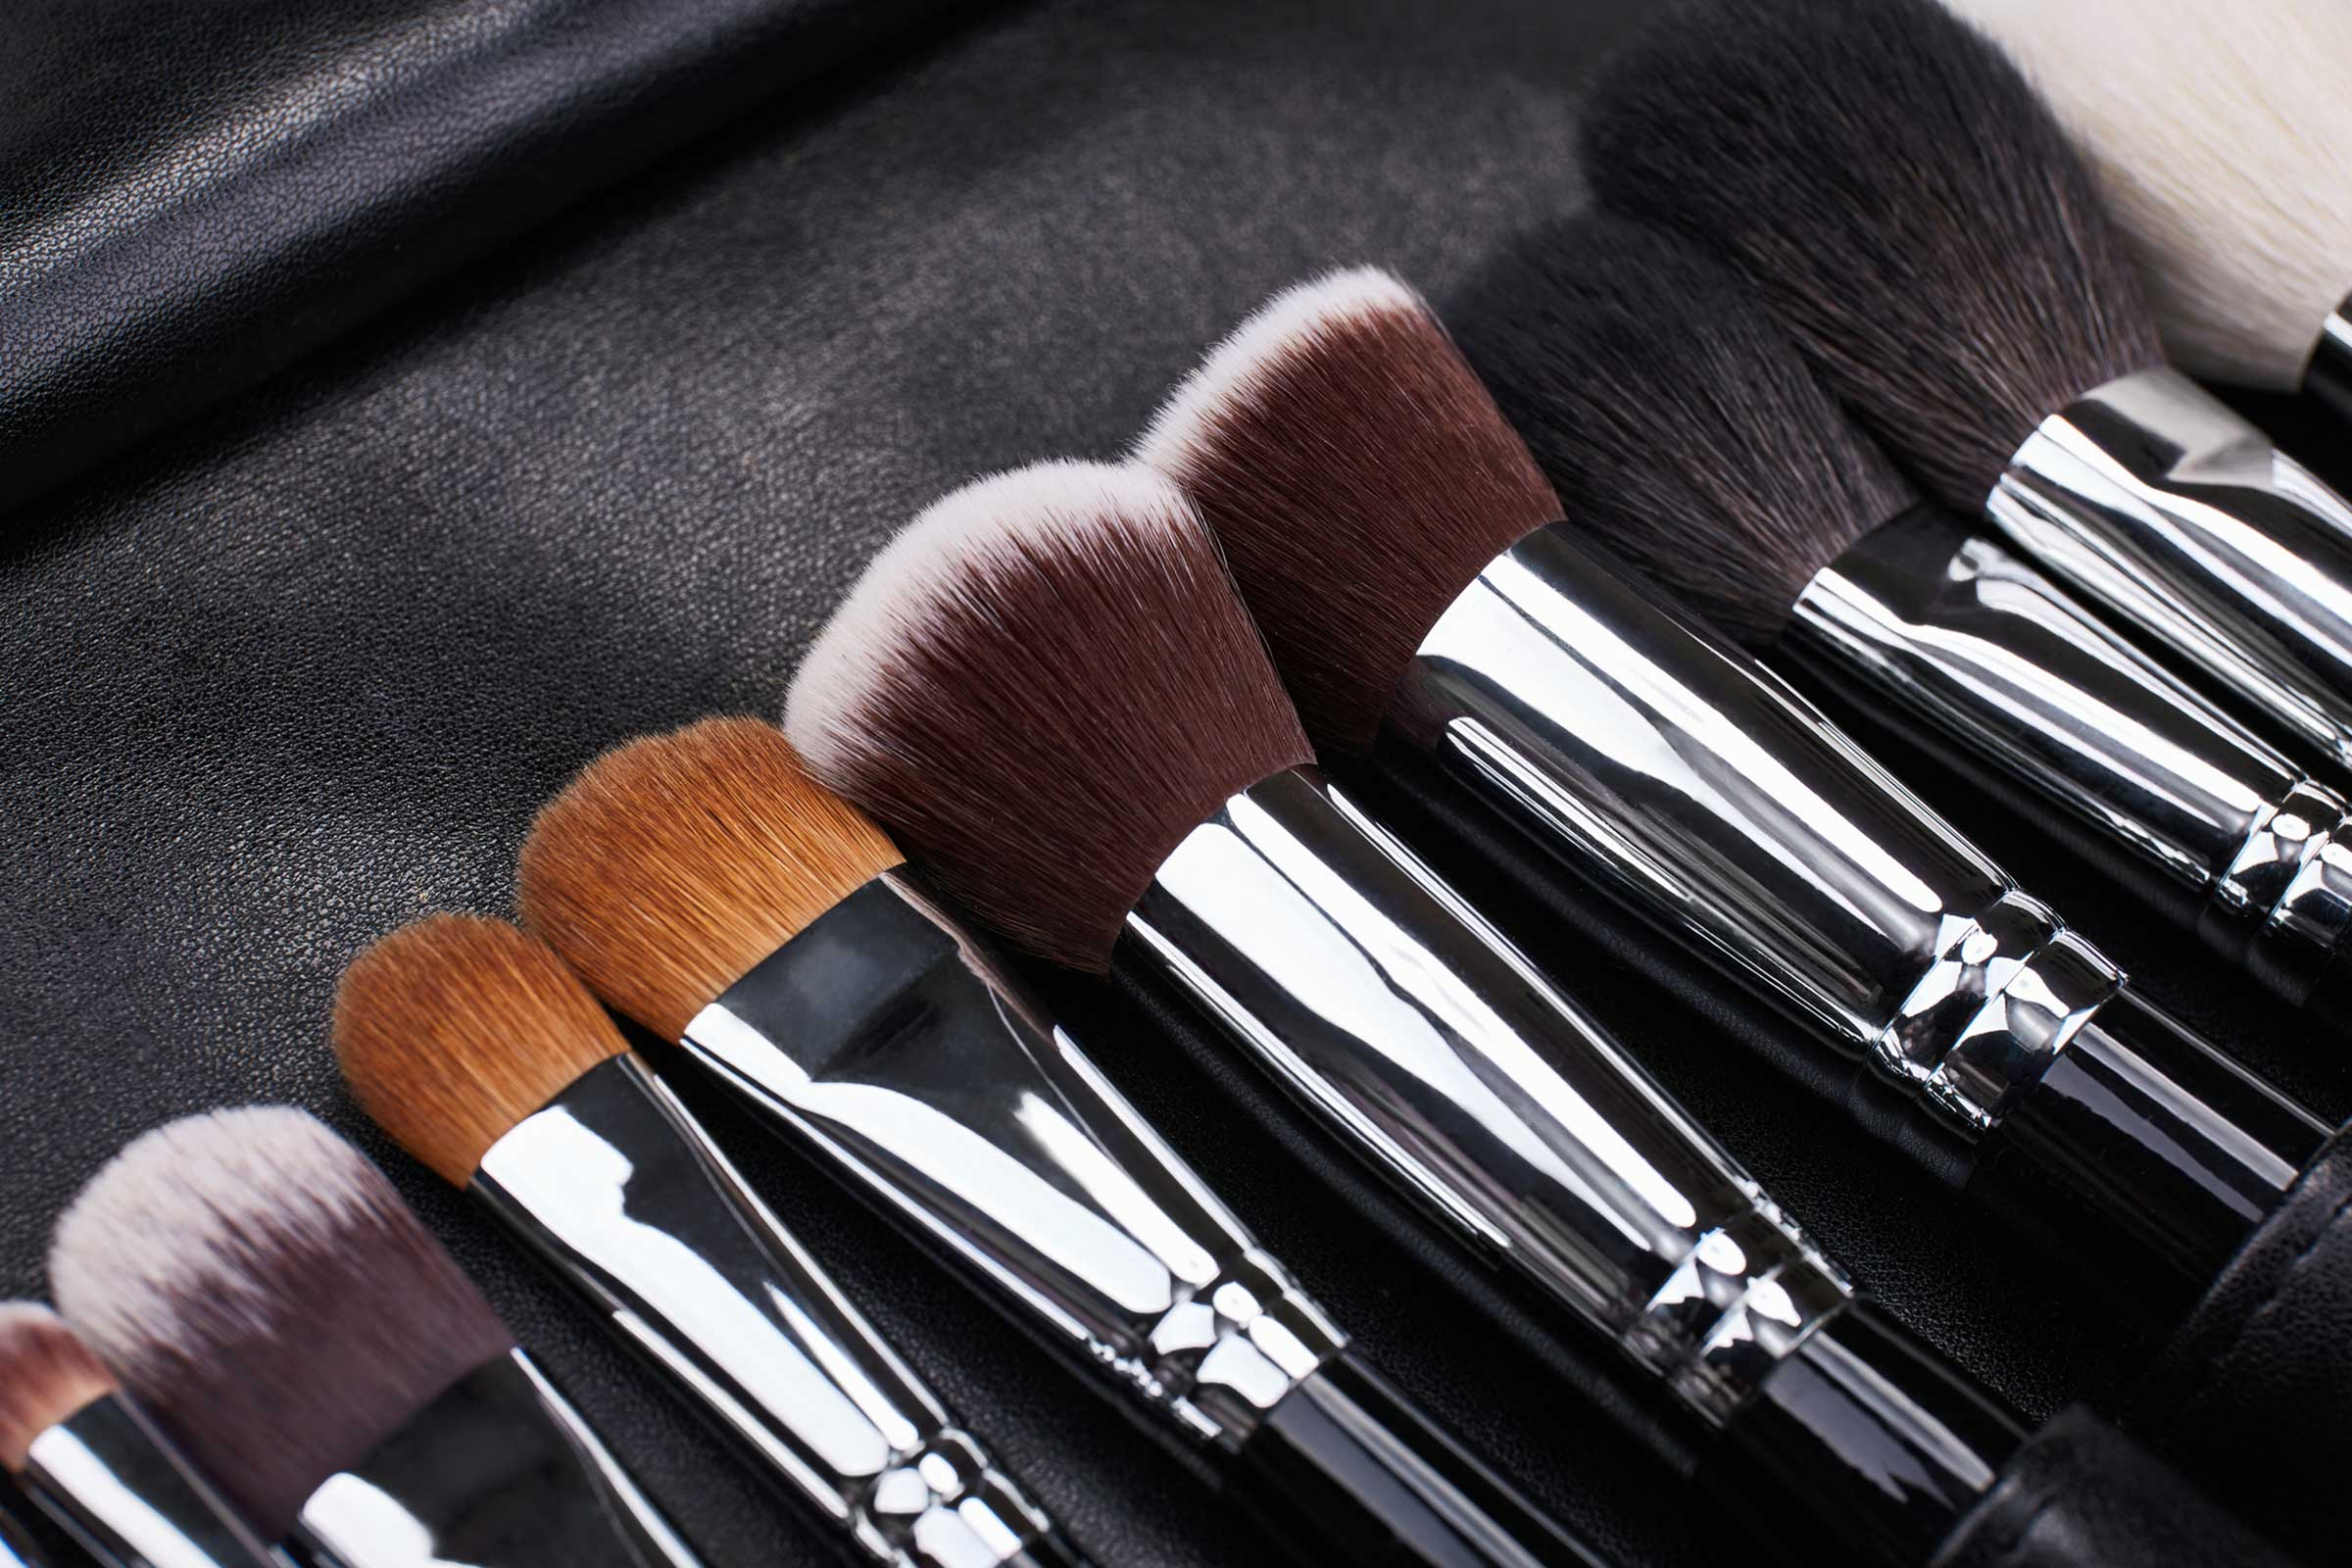 Top 10 Best Buy Makeup Brushes Online In Pakistan Comparison